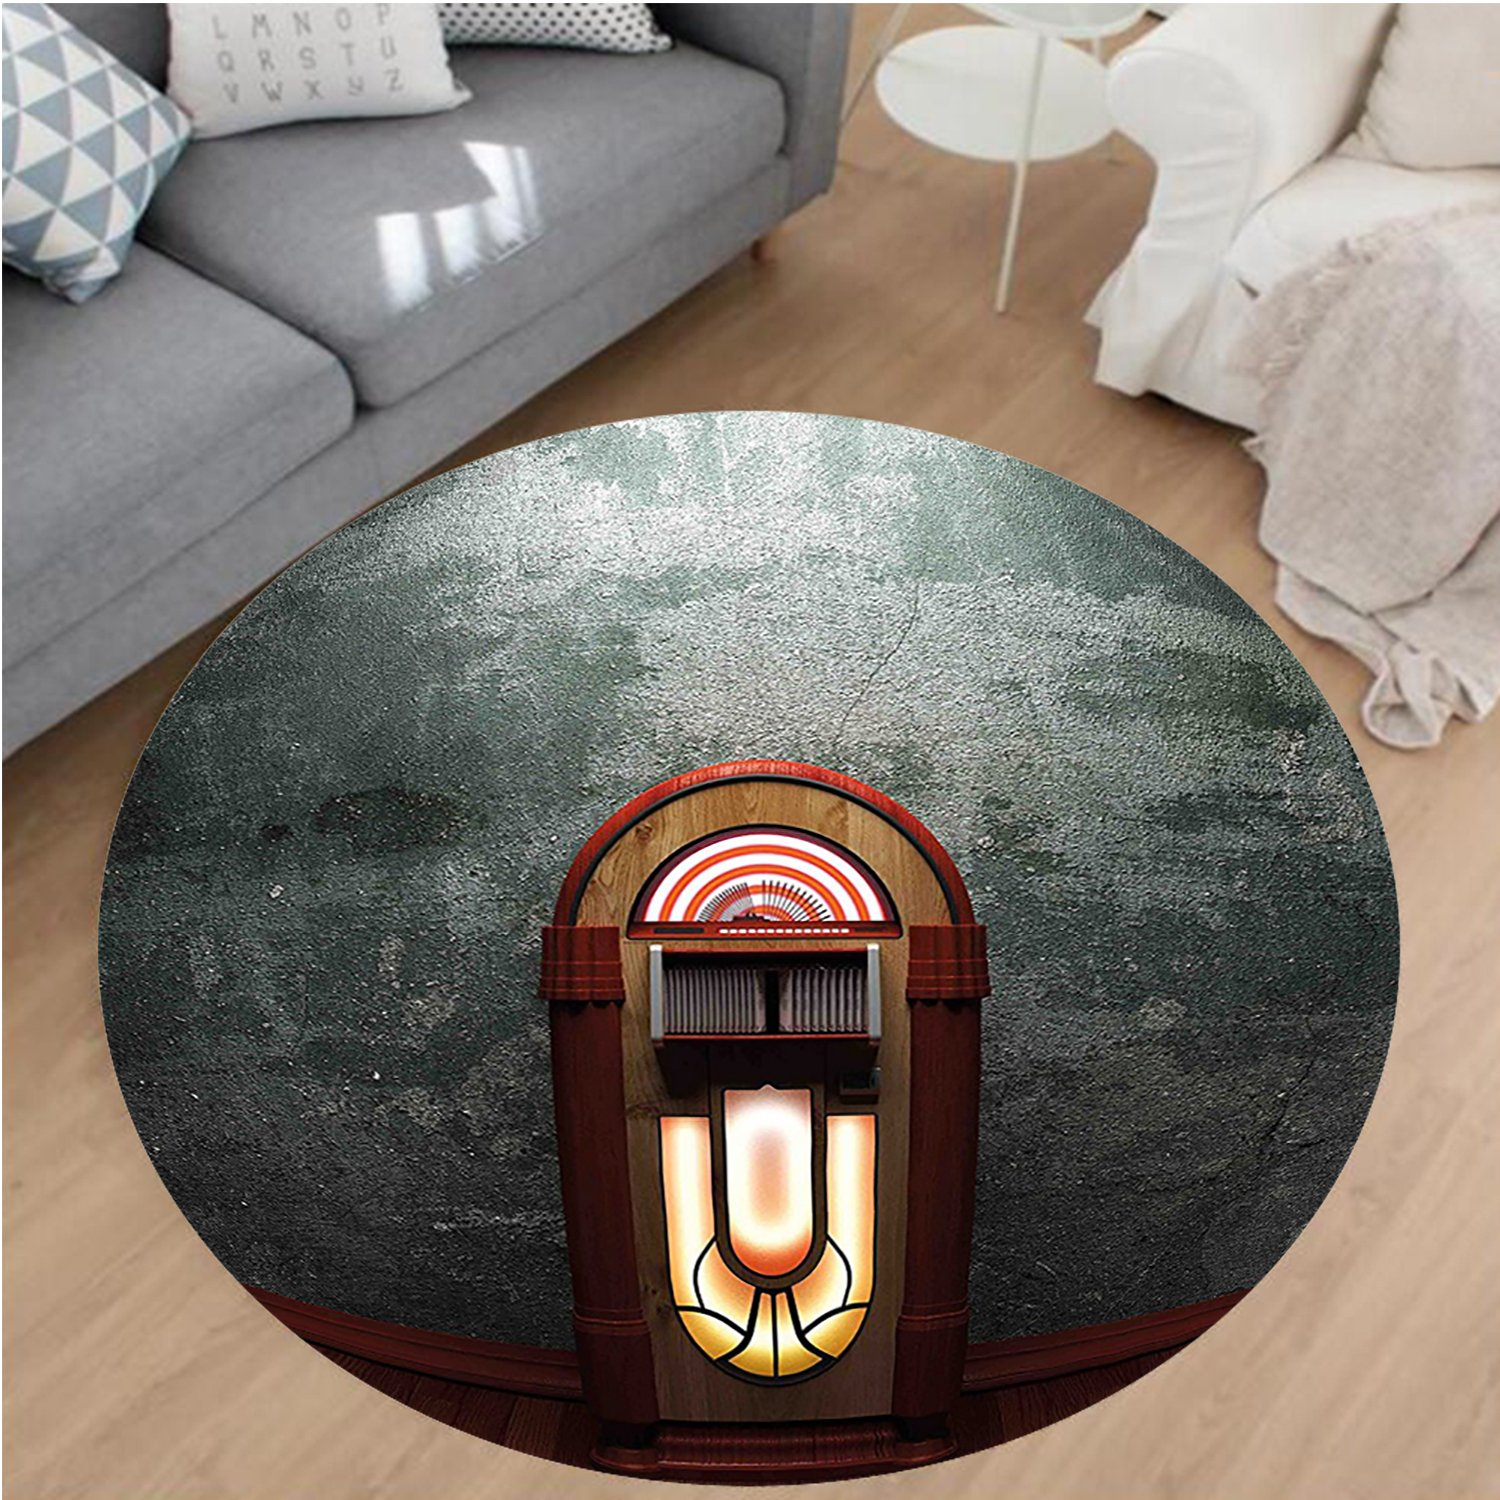 Nalahome Modern Flannel Microfiber Non-Slip Machine Washable Round Area Rug-ry Movie Theme Old Abandoned Home with Antique Old Music Box Image Petrol Green and Brown area rugs Home Decor-Round 67''